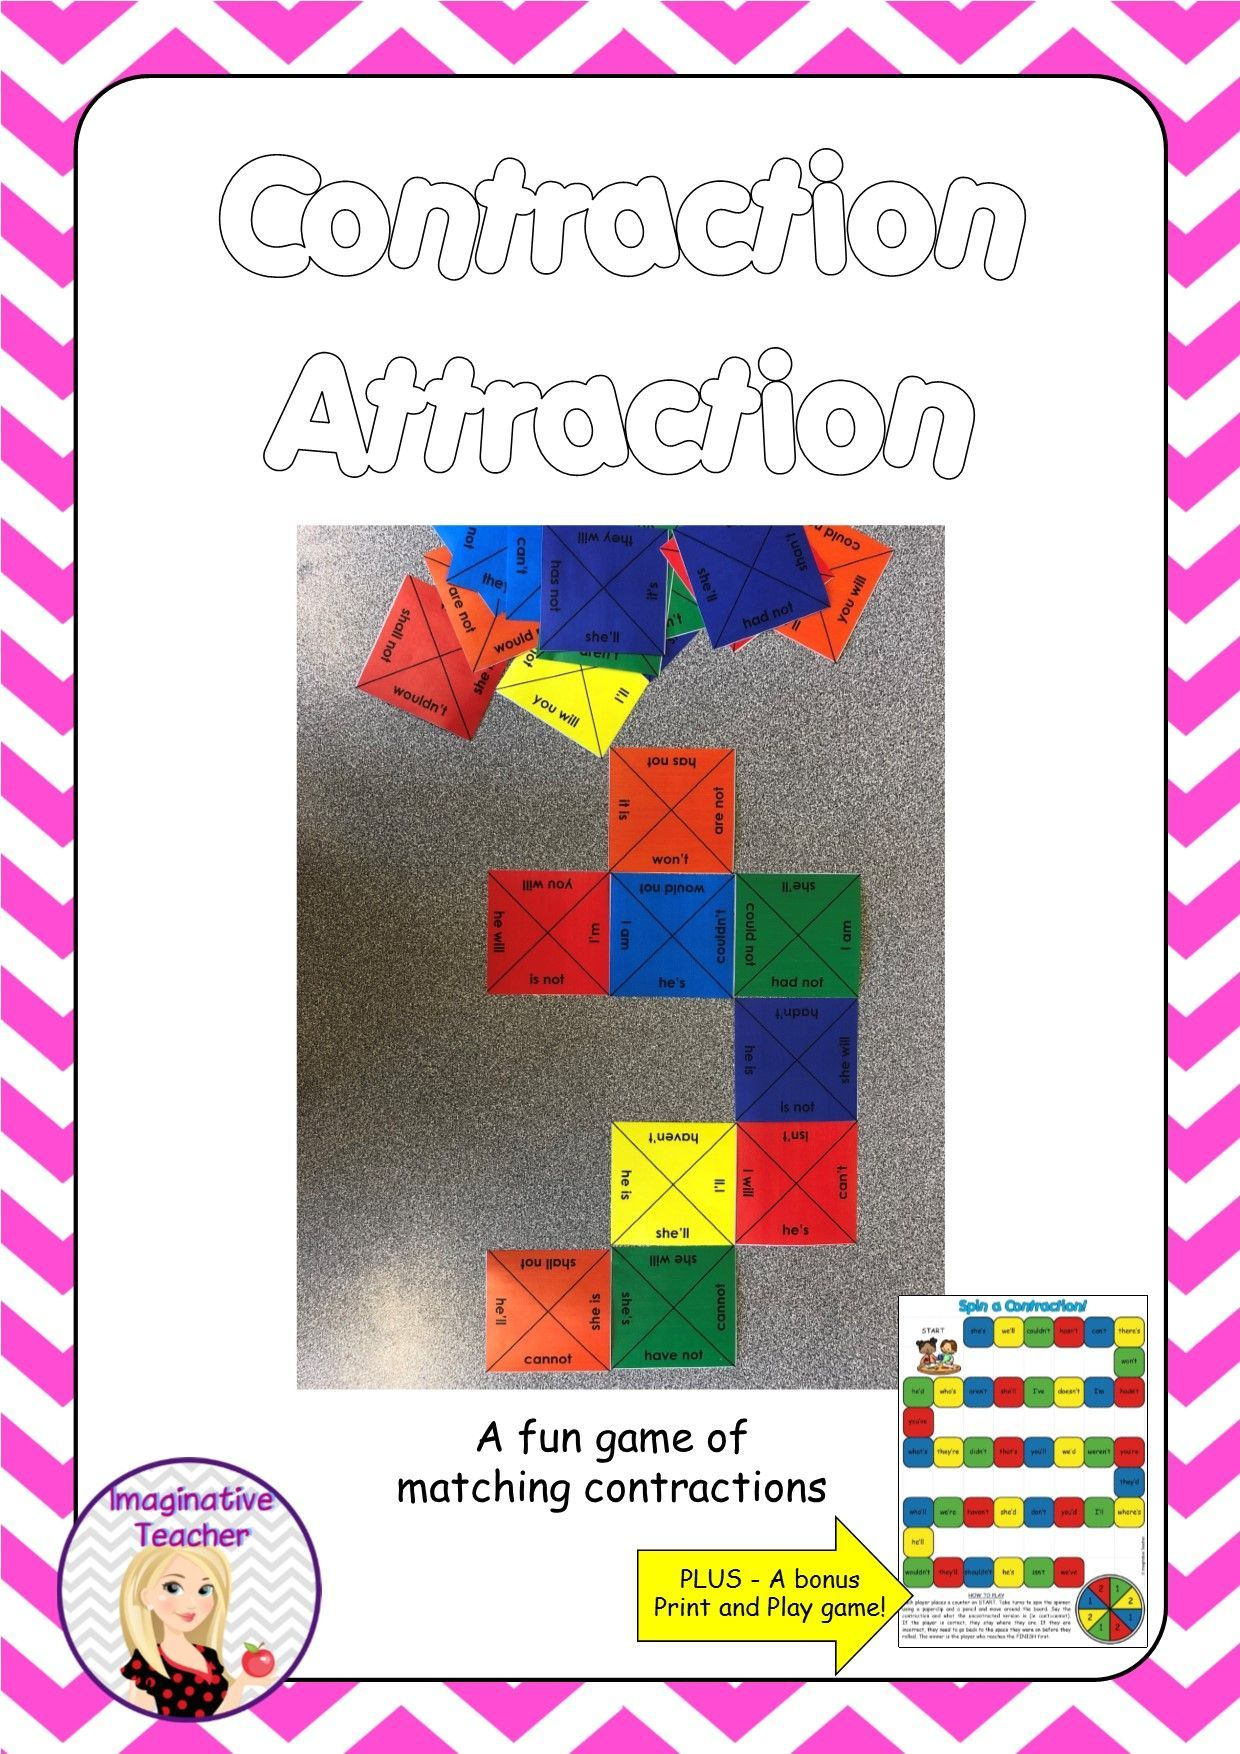 Contraction Attraction Game